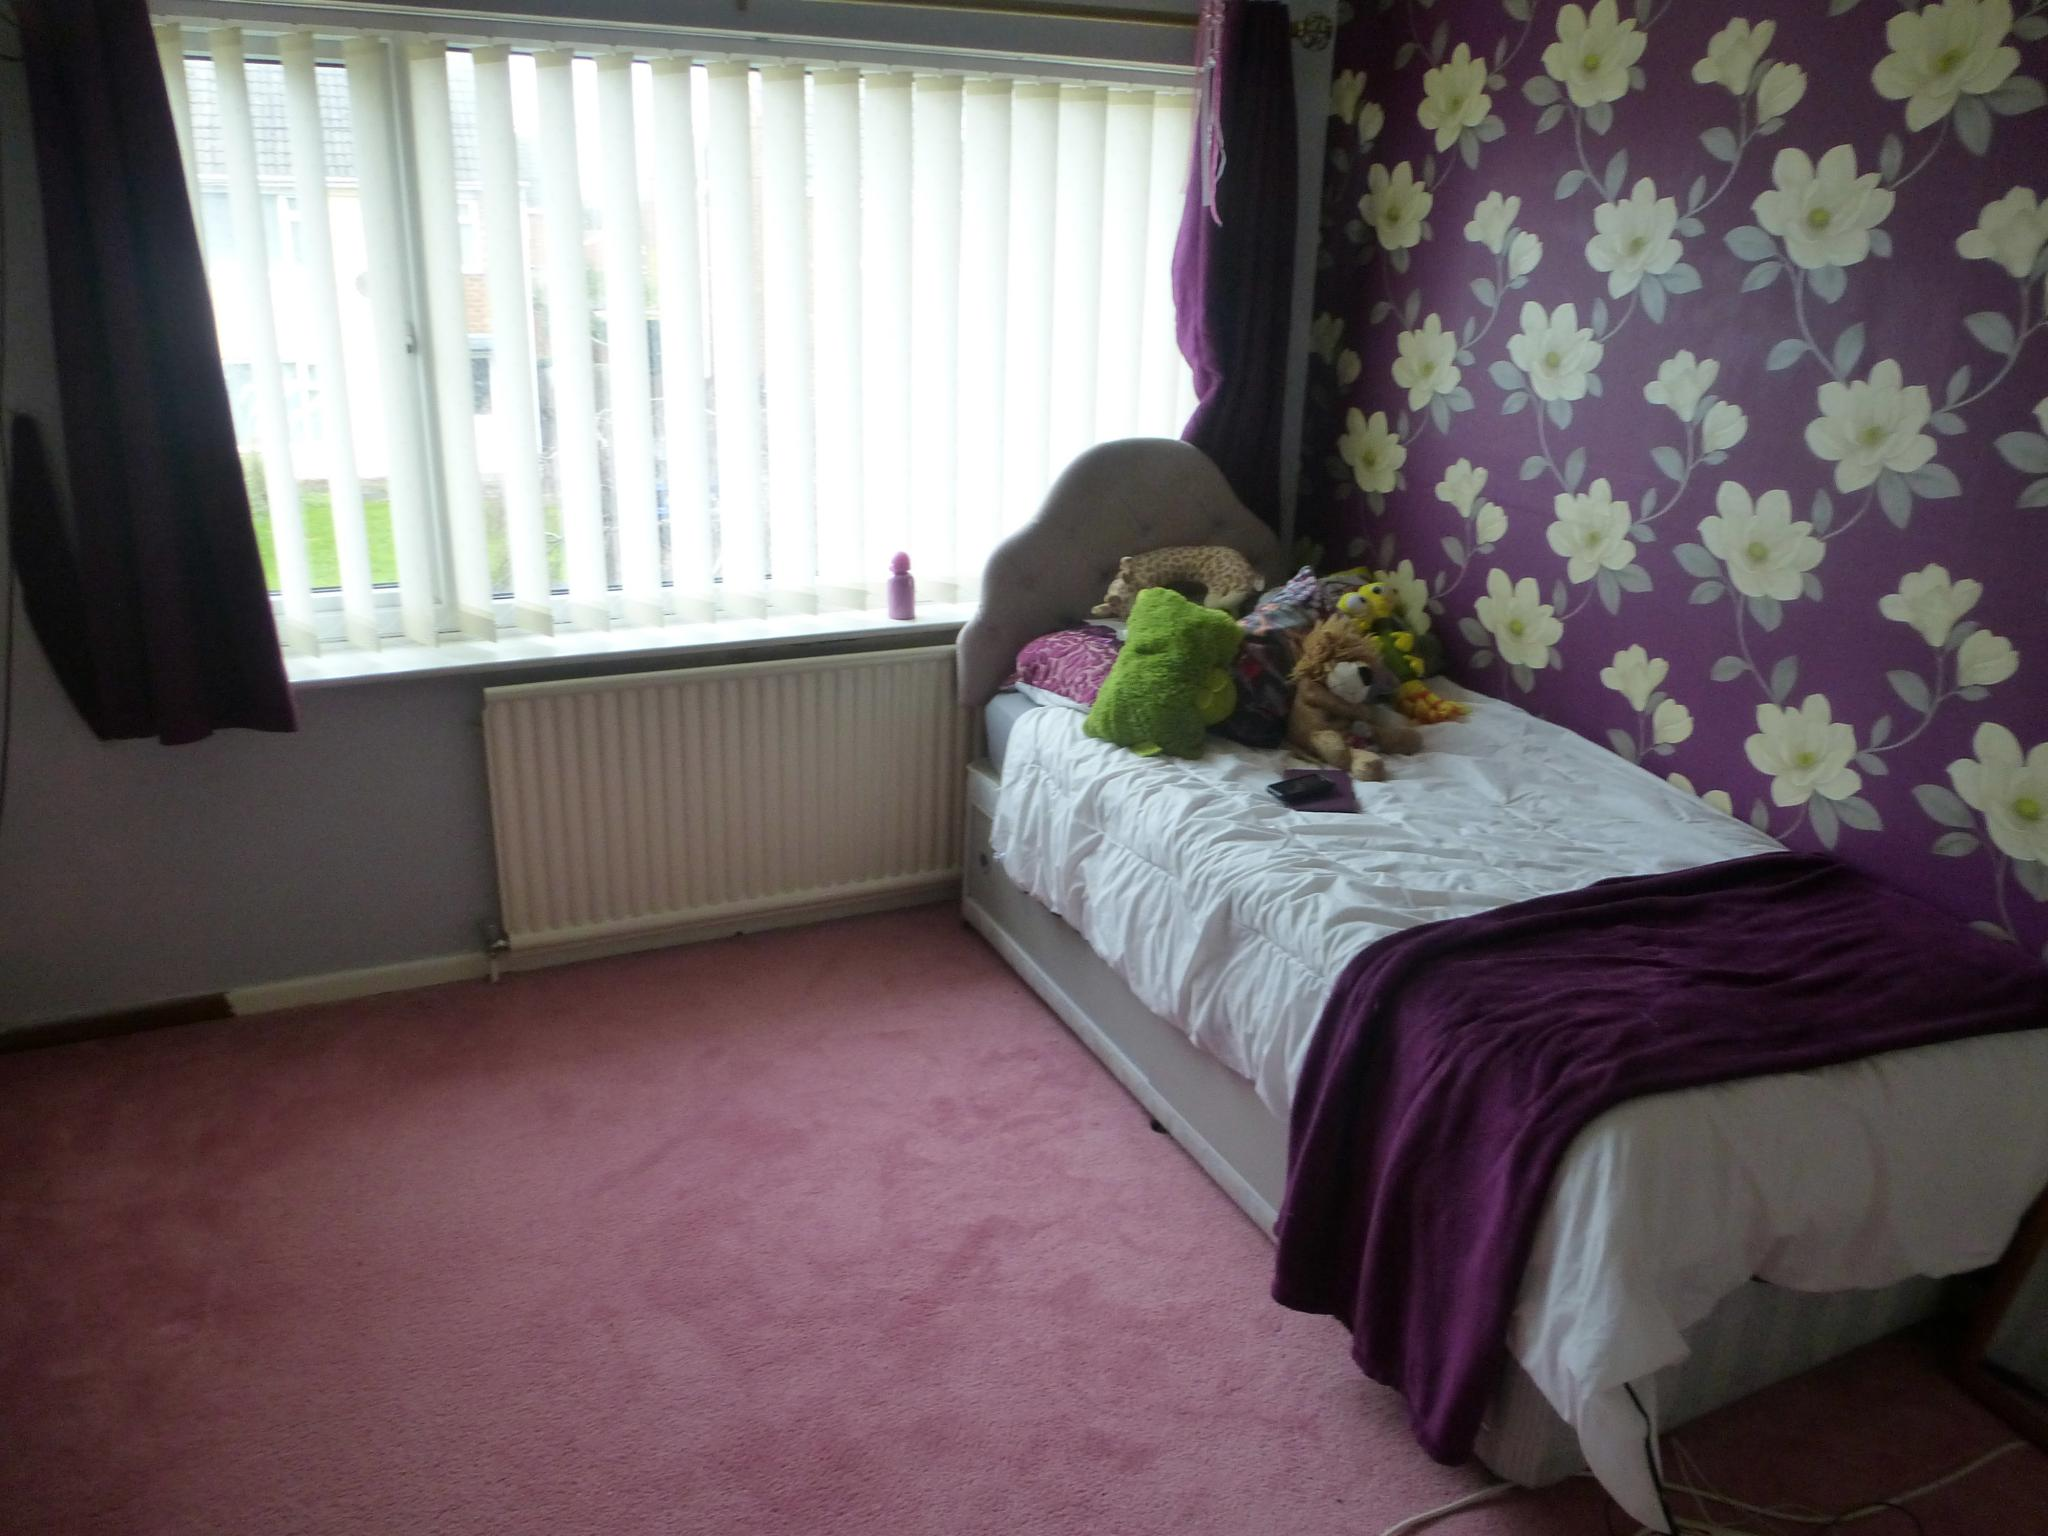 Image 1 of 2 of BEDROOM 2, on Accommodation Comprising for